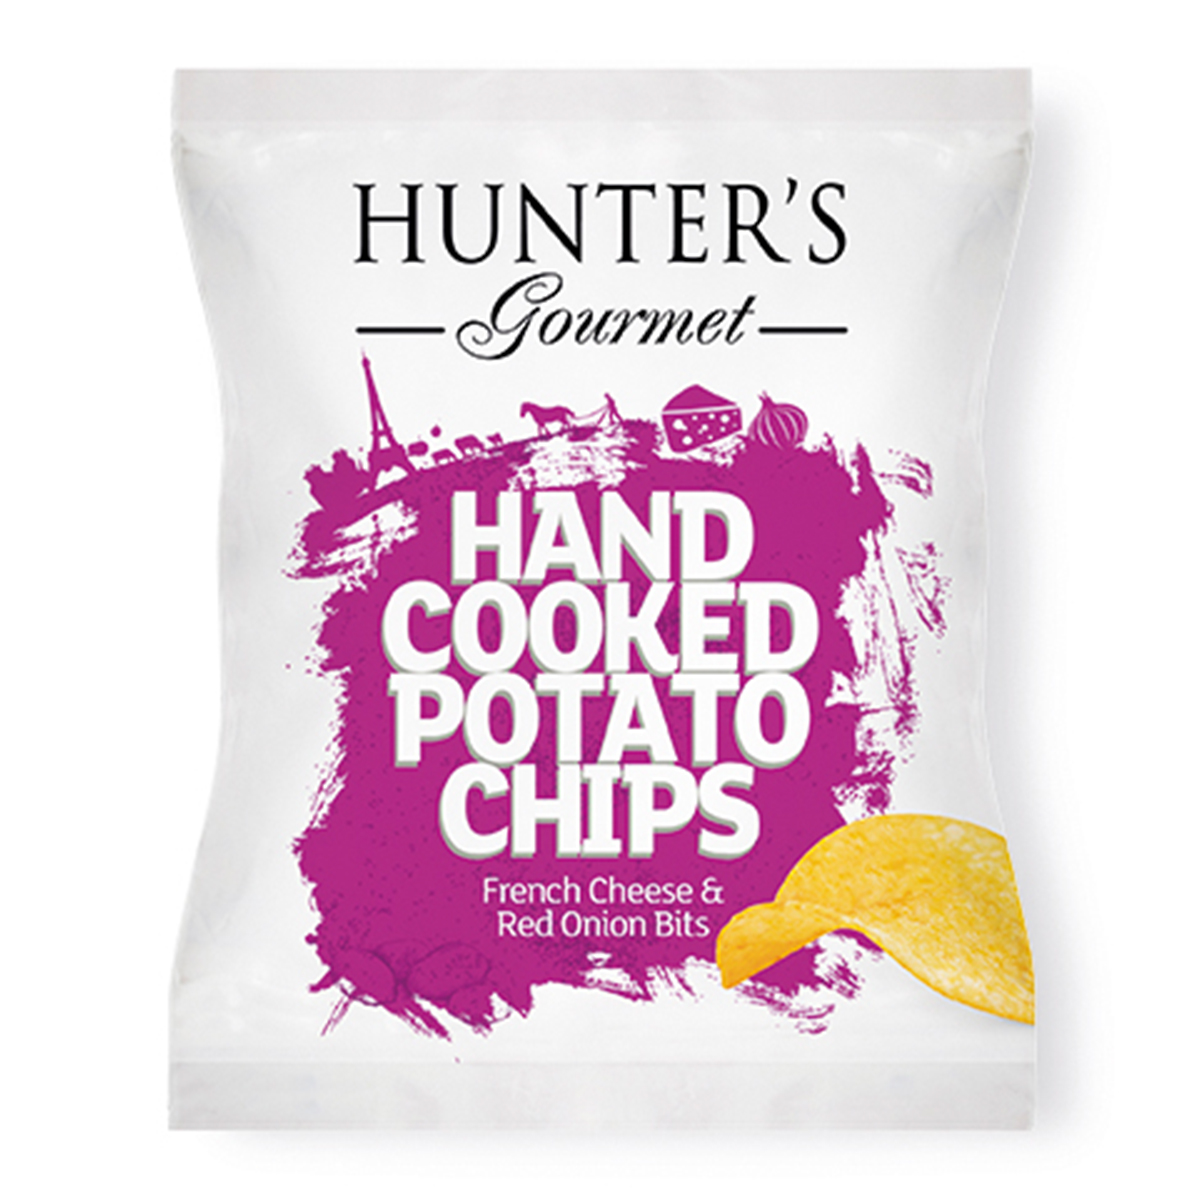 Hand Cooked Potato Chips - French Cheese & Red Onion Bits (40gm)